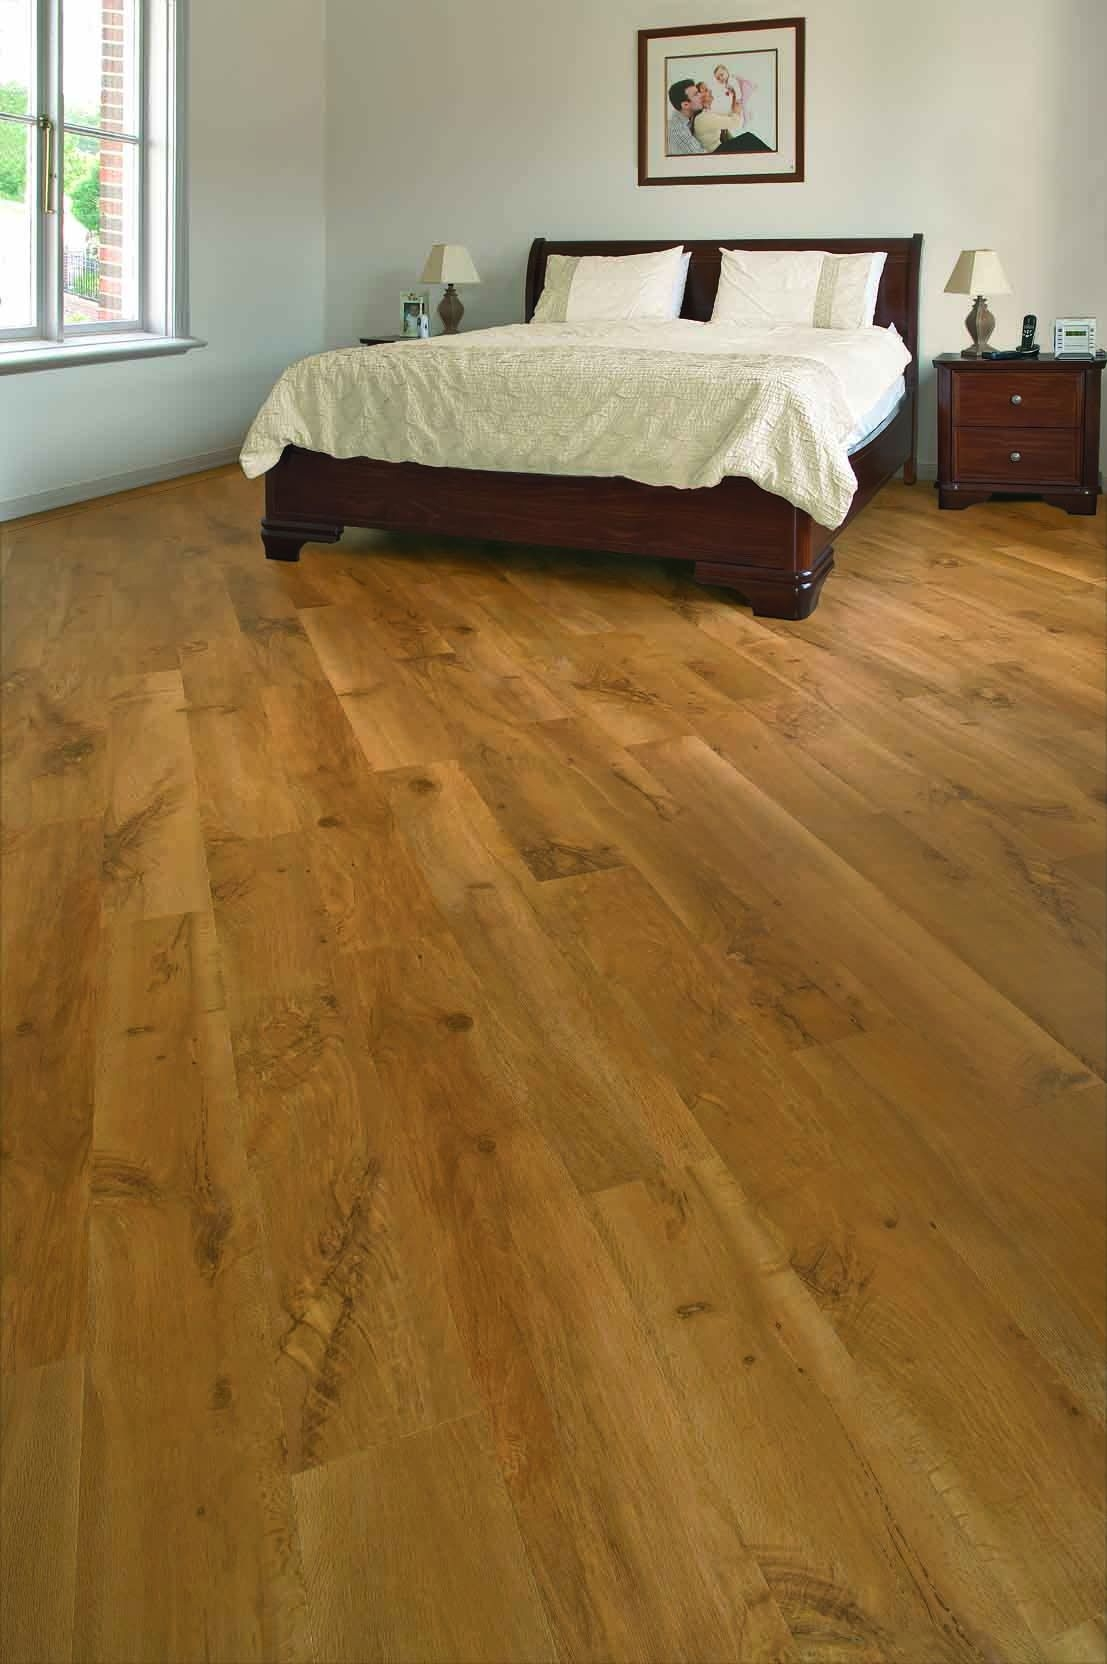 Mineral Oil On Wood Floors